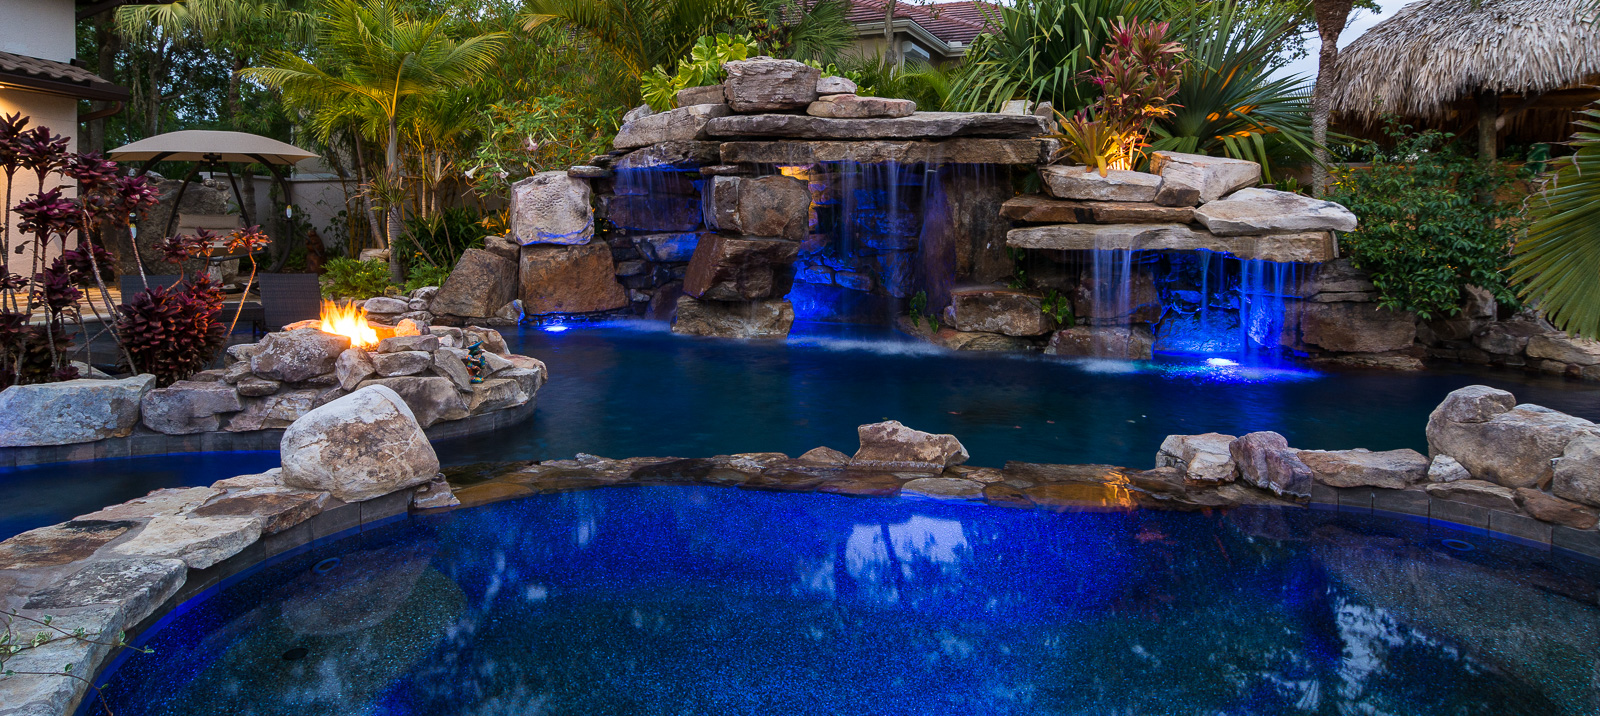 Custom Rock Waterfall Pool Grotto Spa Natural Stream Tiki Hut